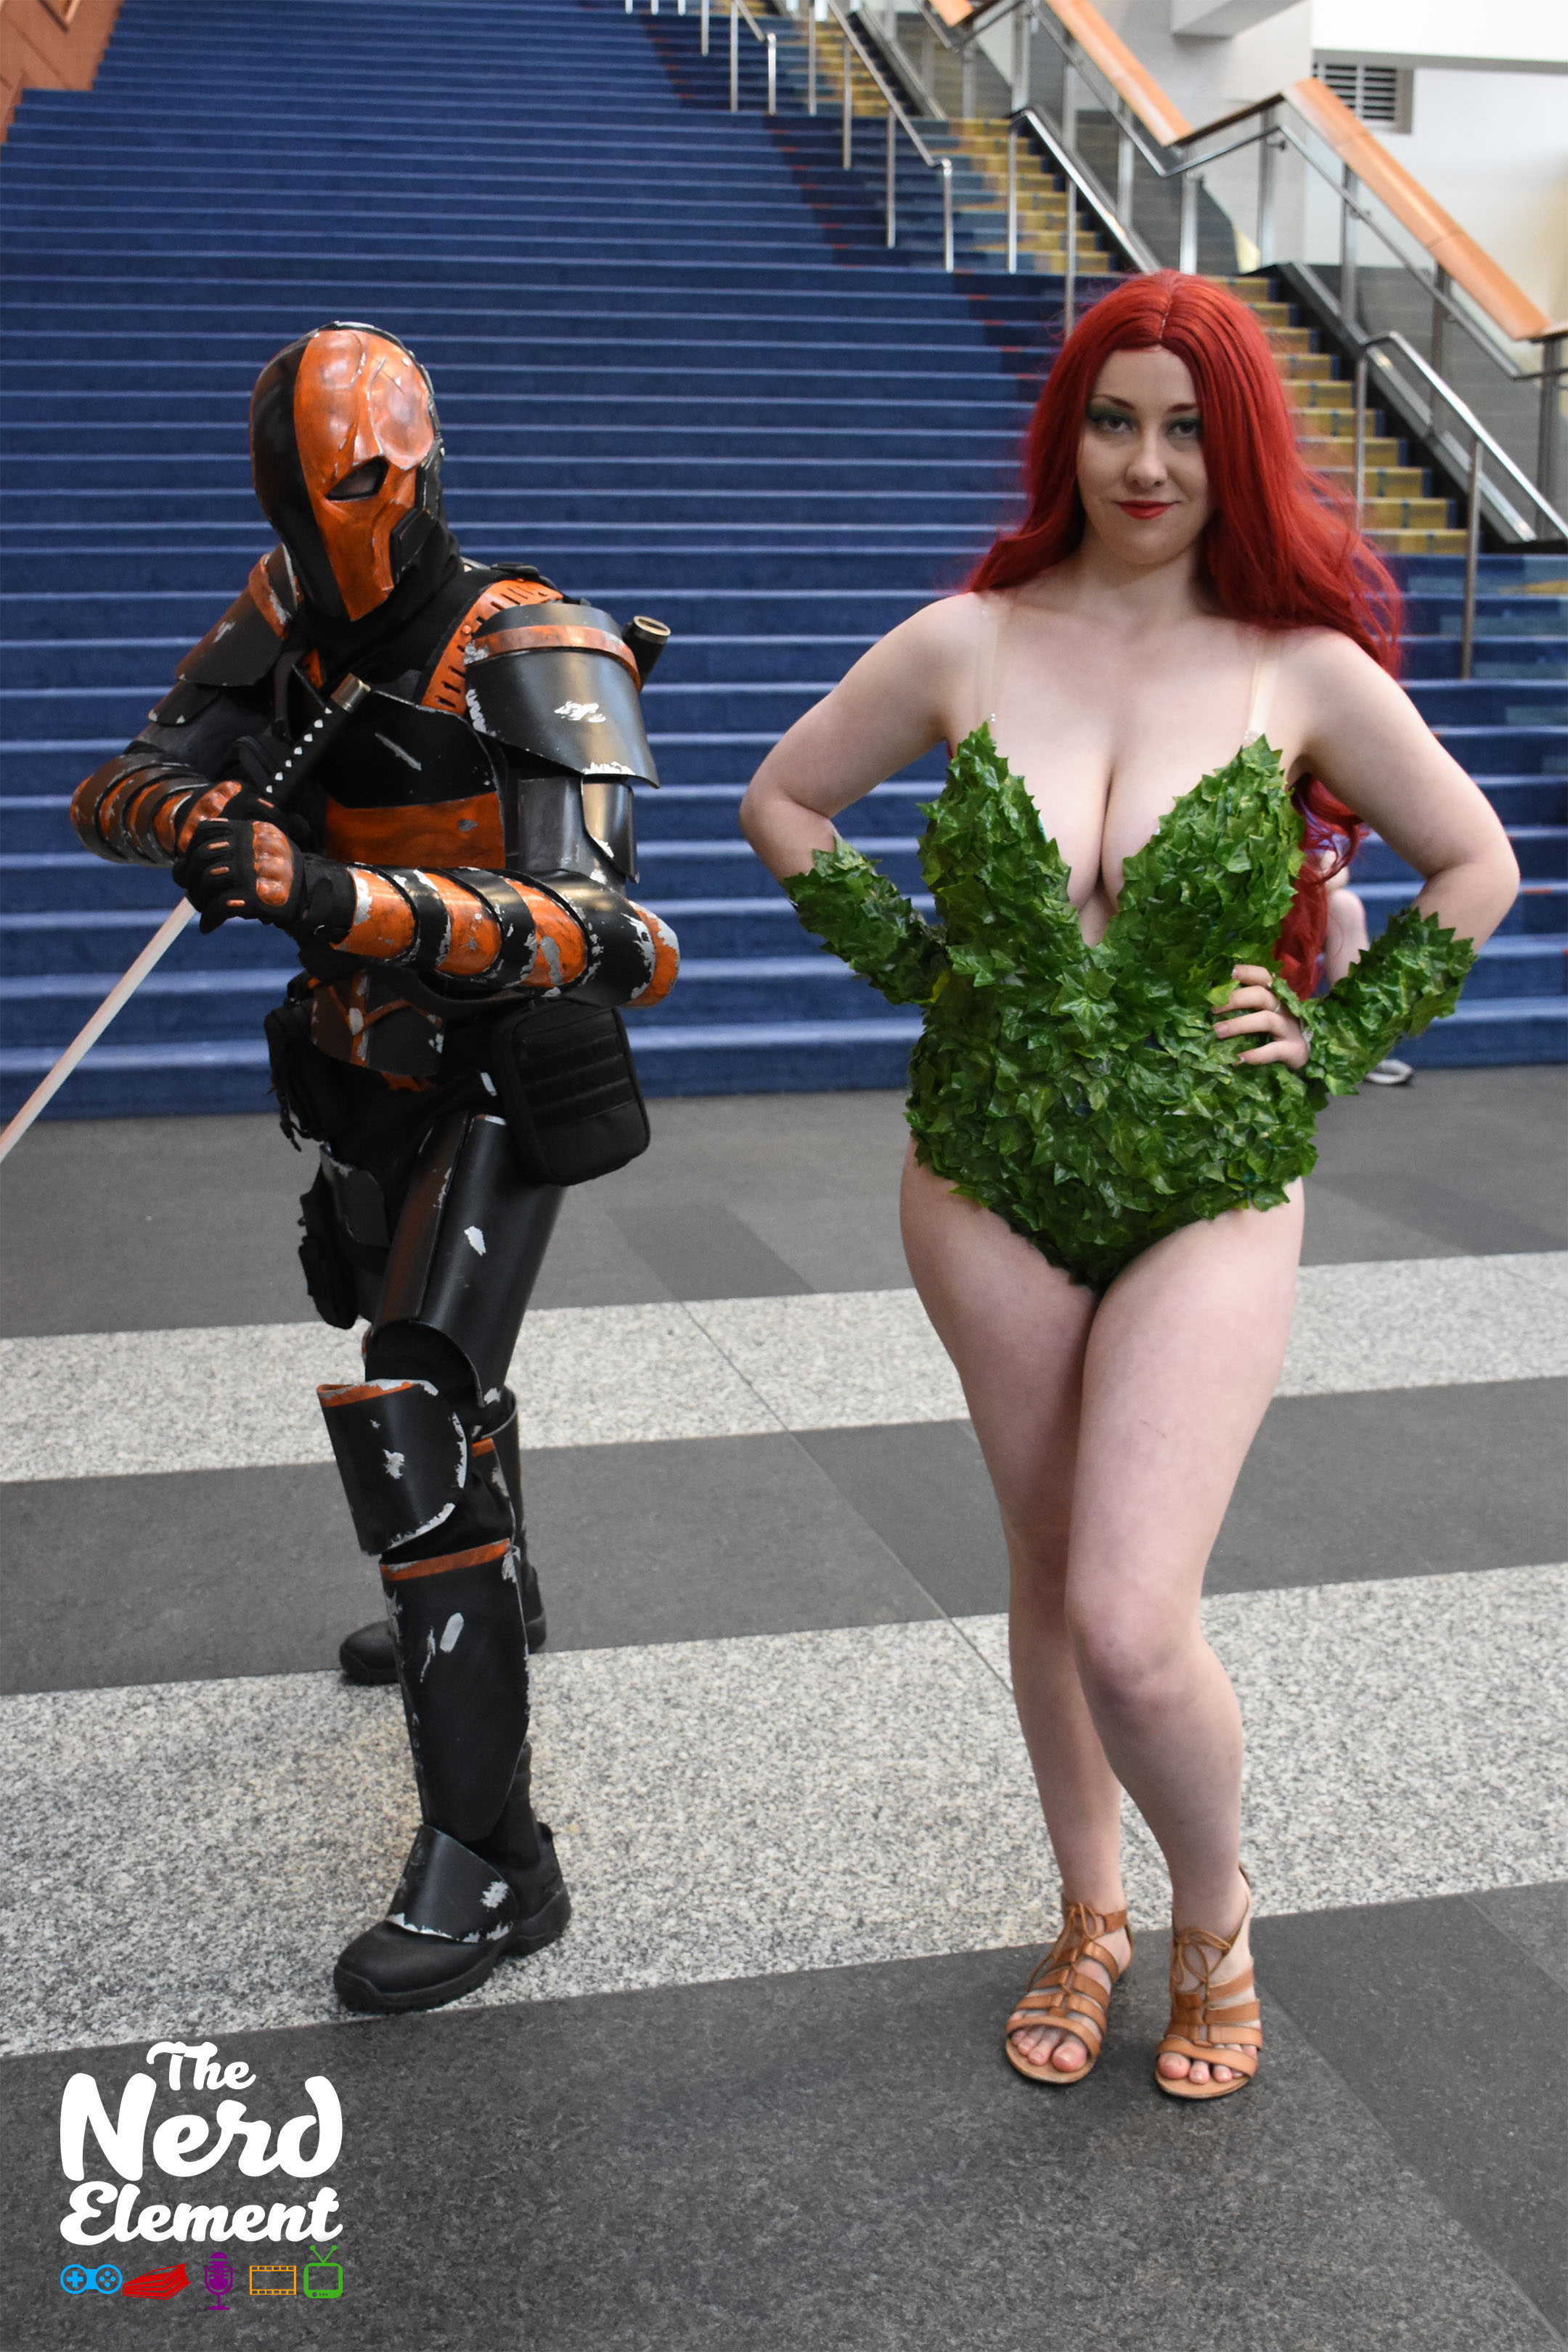 Deathstroke and Poison Ivy (IG: prettyinblack102)